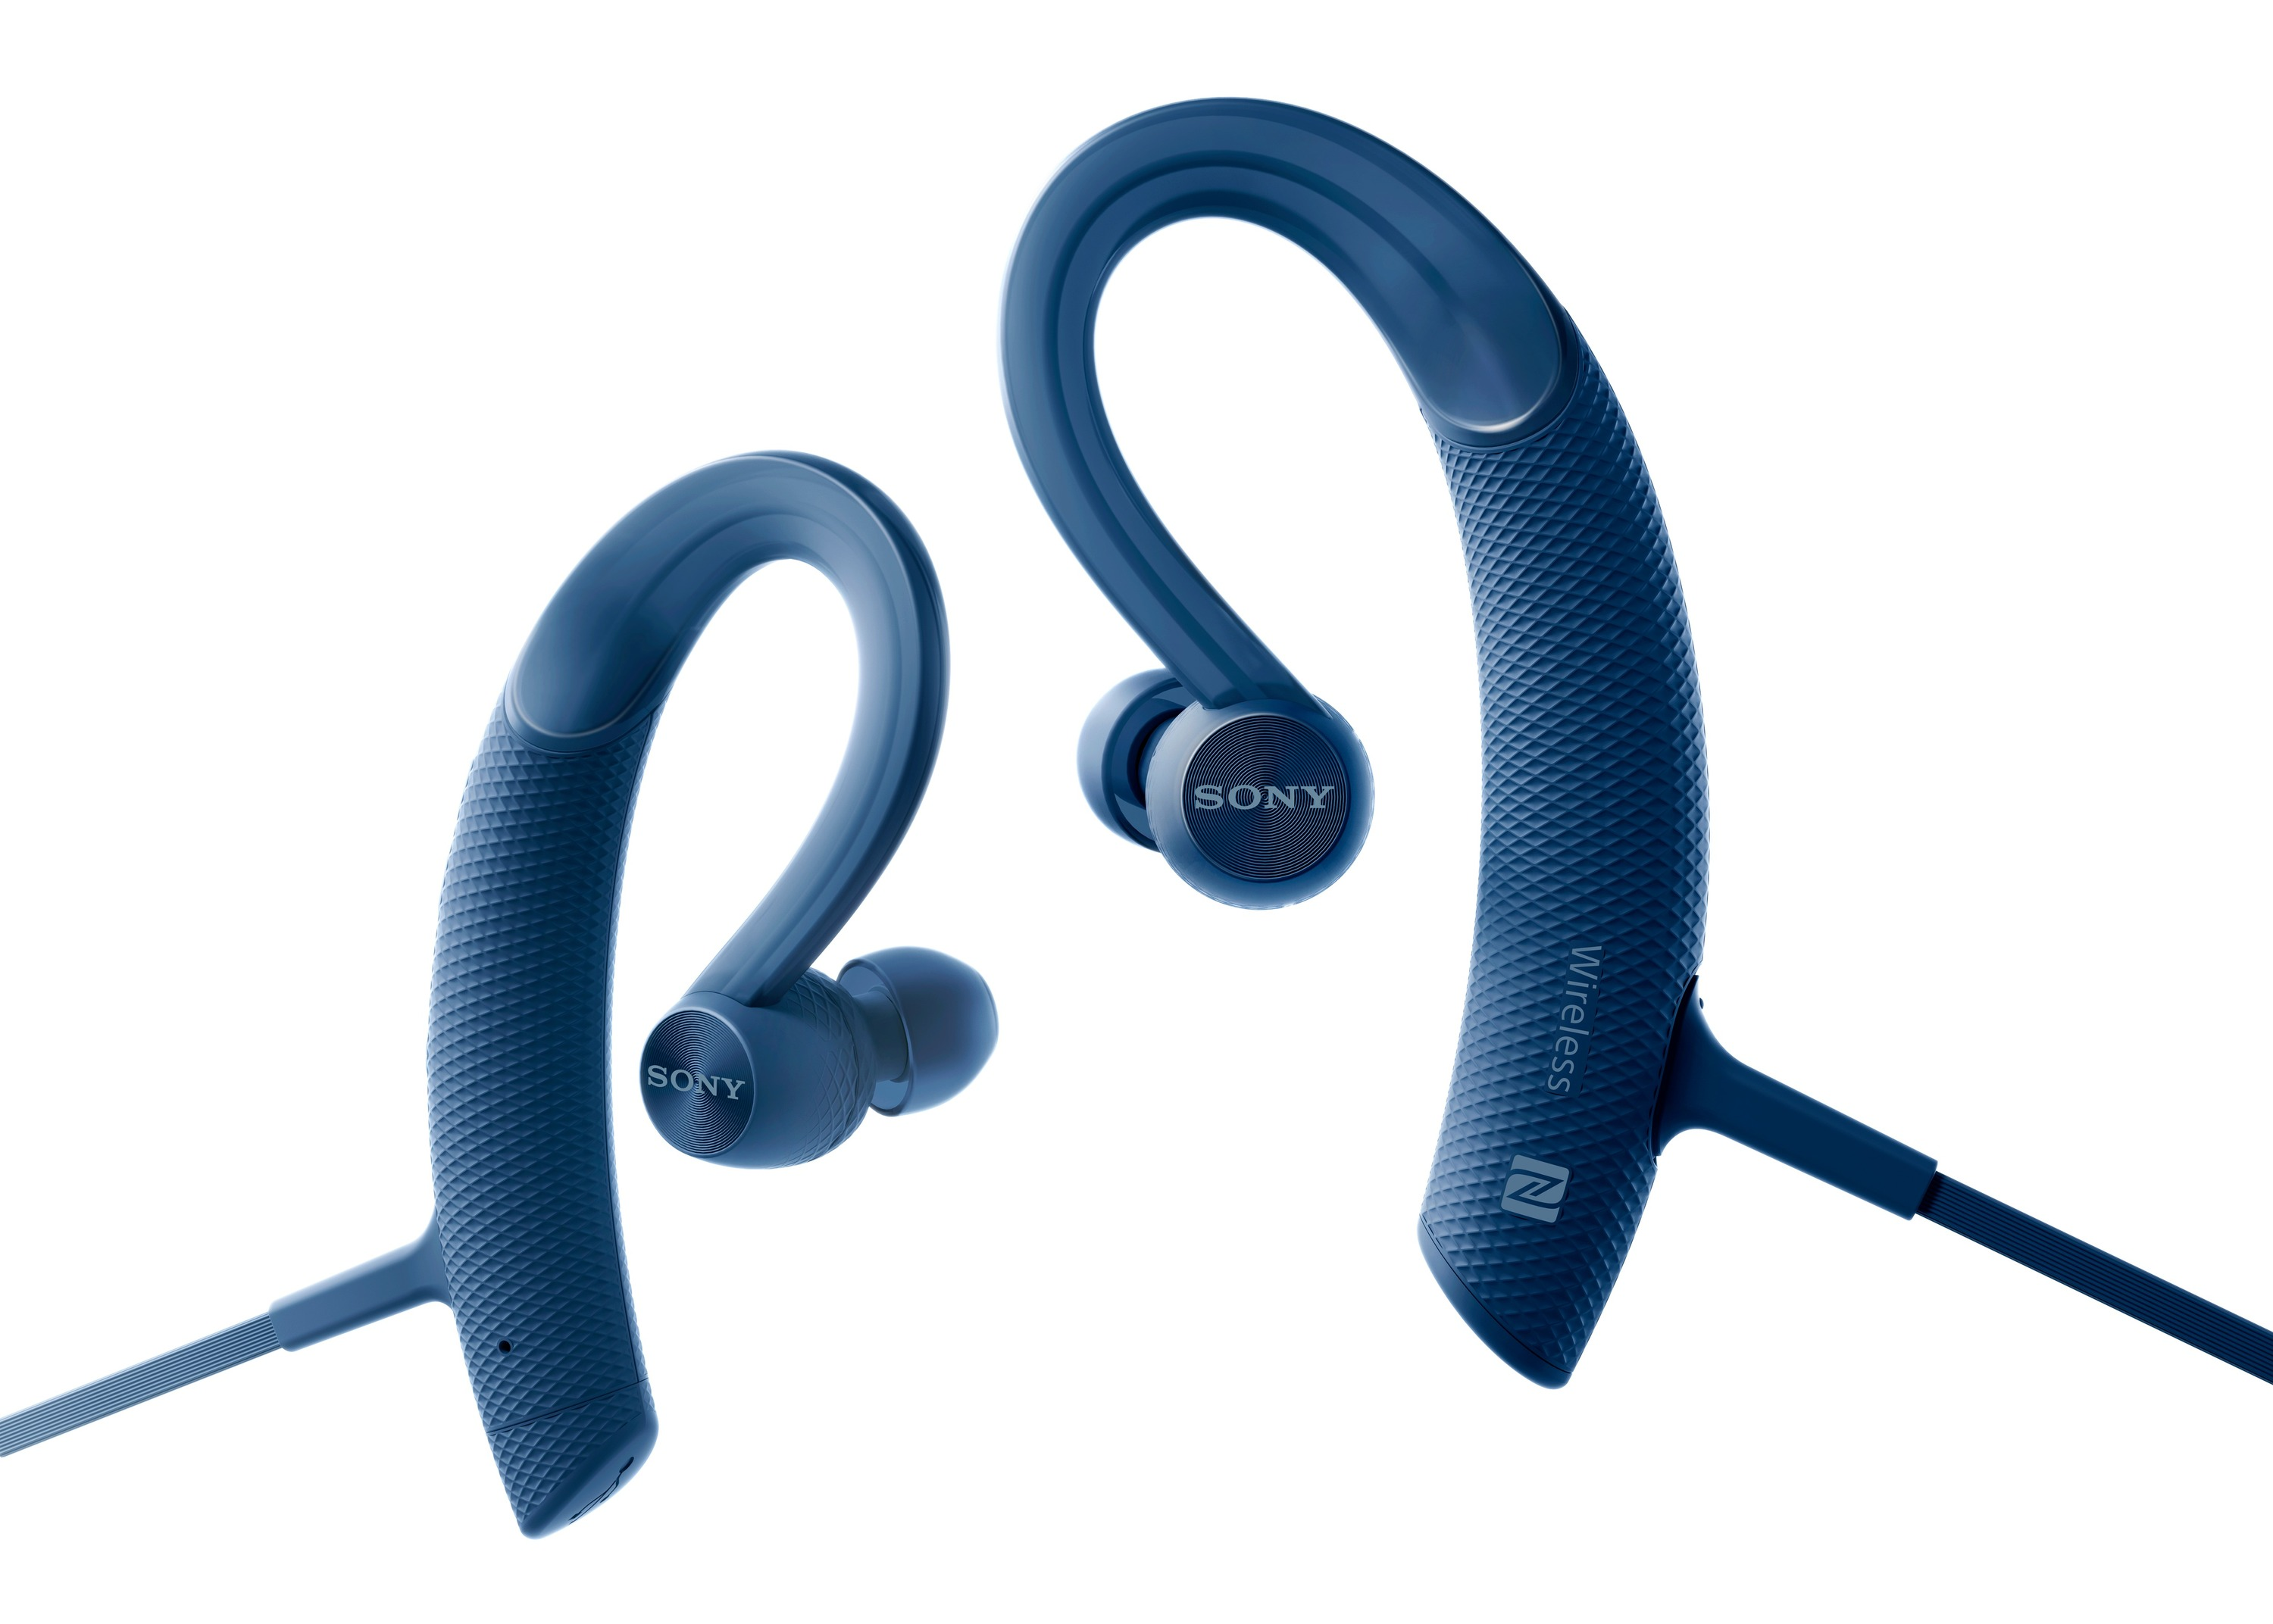 Sony earbuds refurbished - sony wireless headphones refurbished